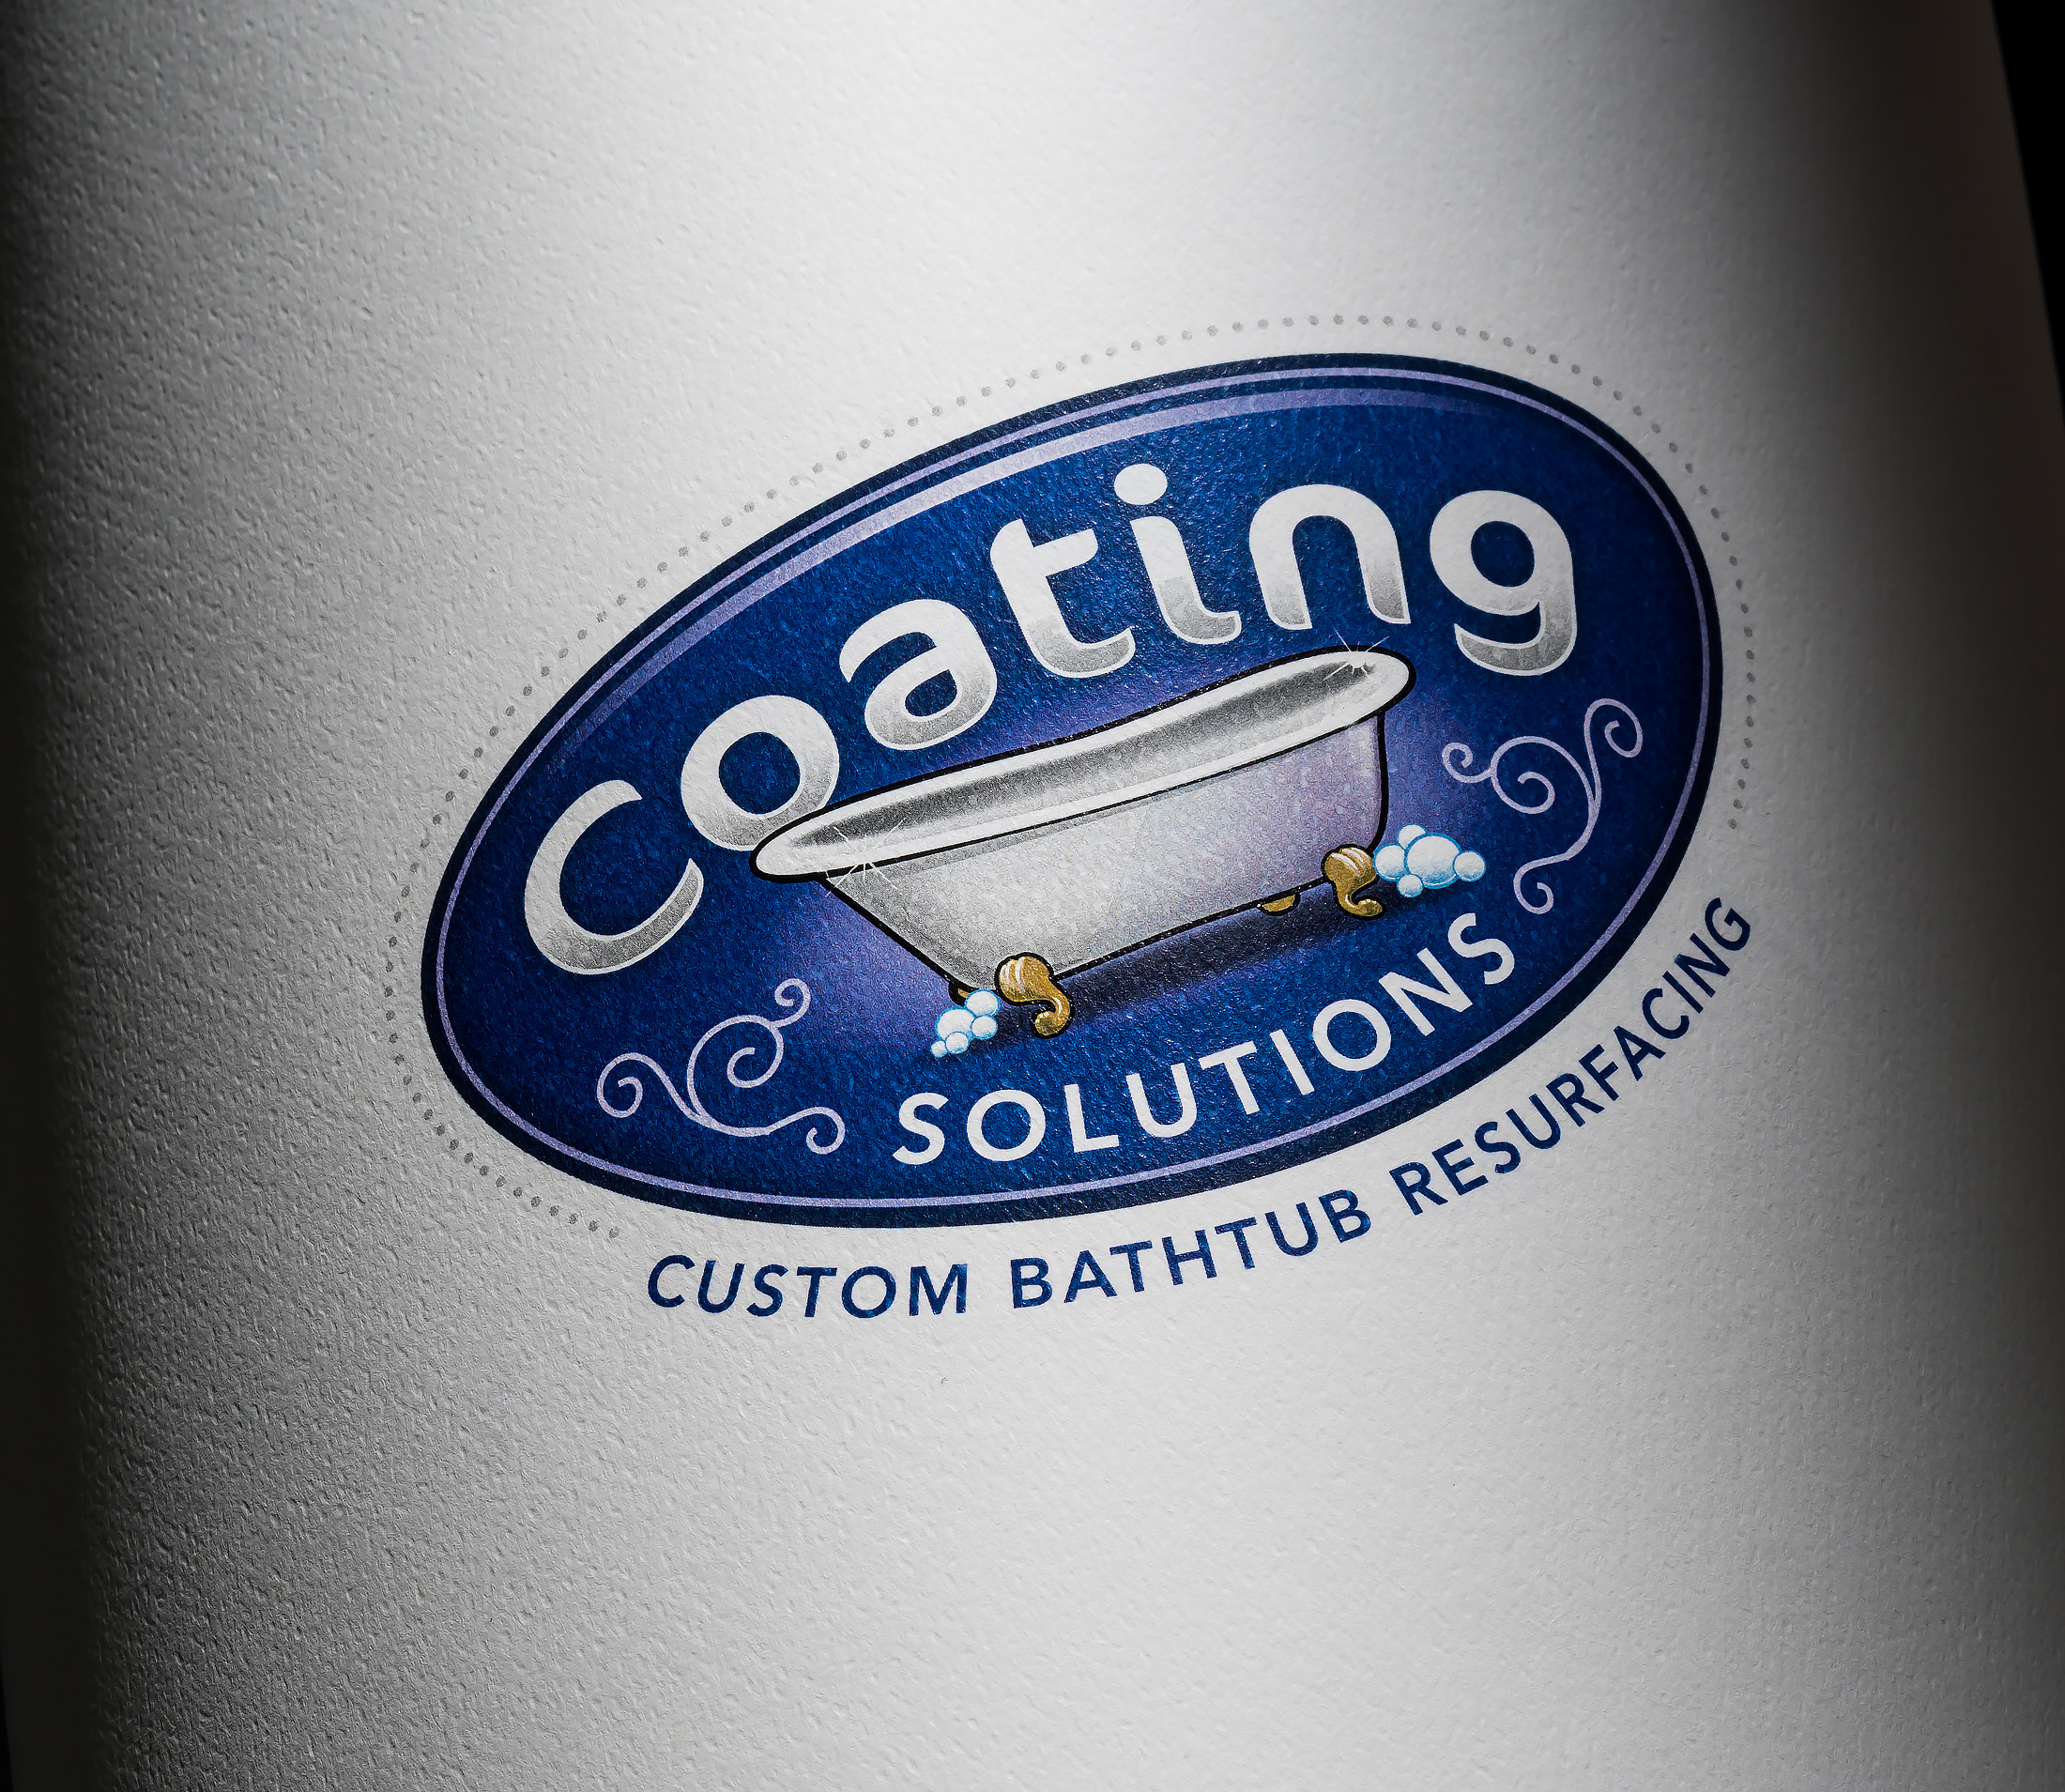 Coating Solutions